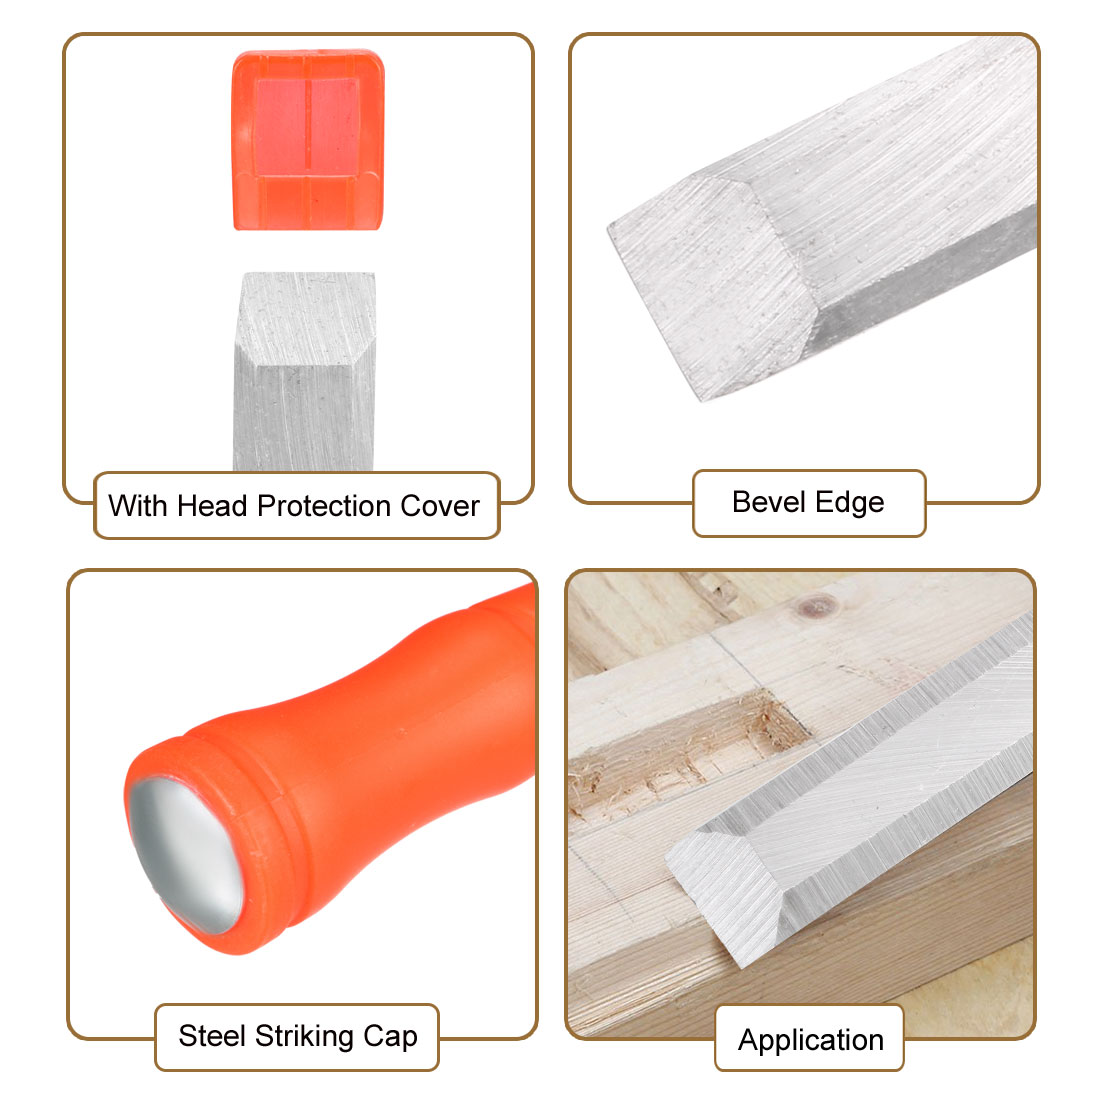 Wood Chisel for Carpentry 14mm Wide Flat Carving Carbon Steel PVC Hand Tool - image 1 of 3